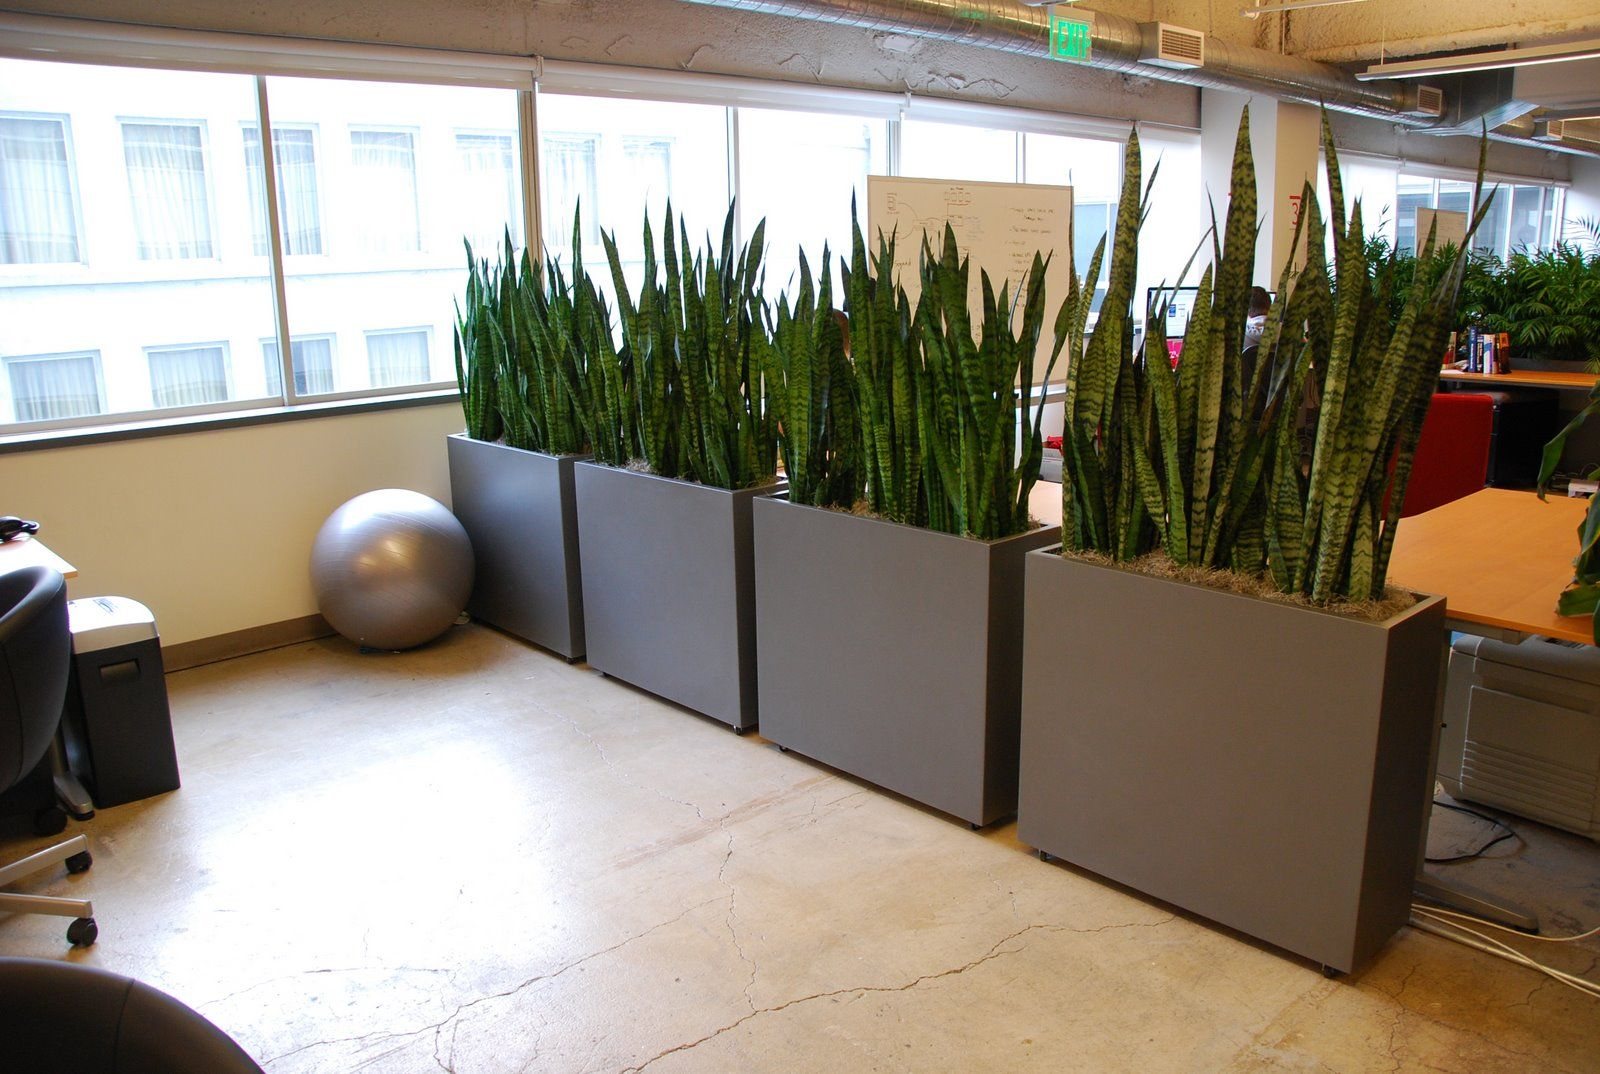 Charmant Earth Walls On Wheels Make Great Dividers Want To Do This Near The Kitchen  With Herbs